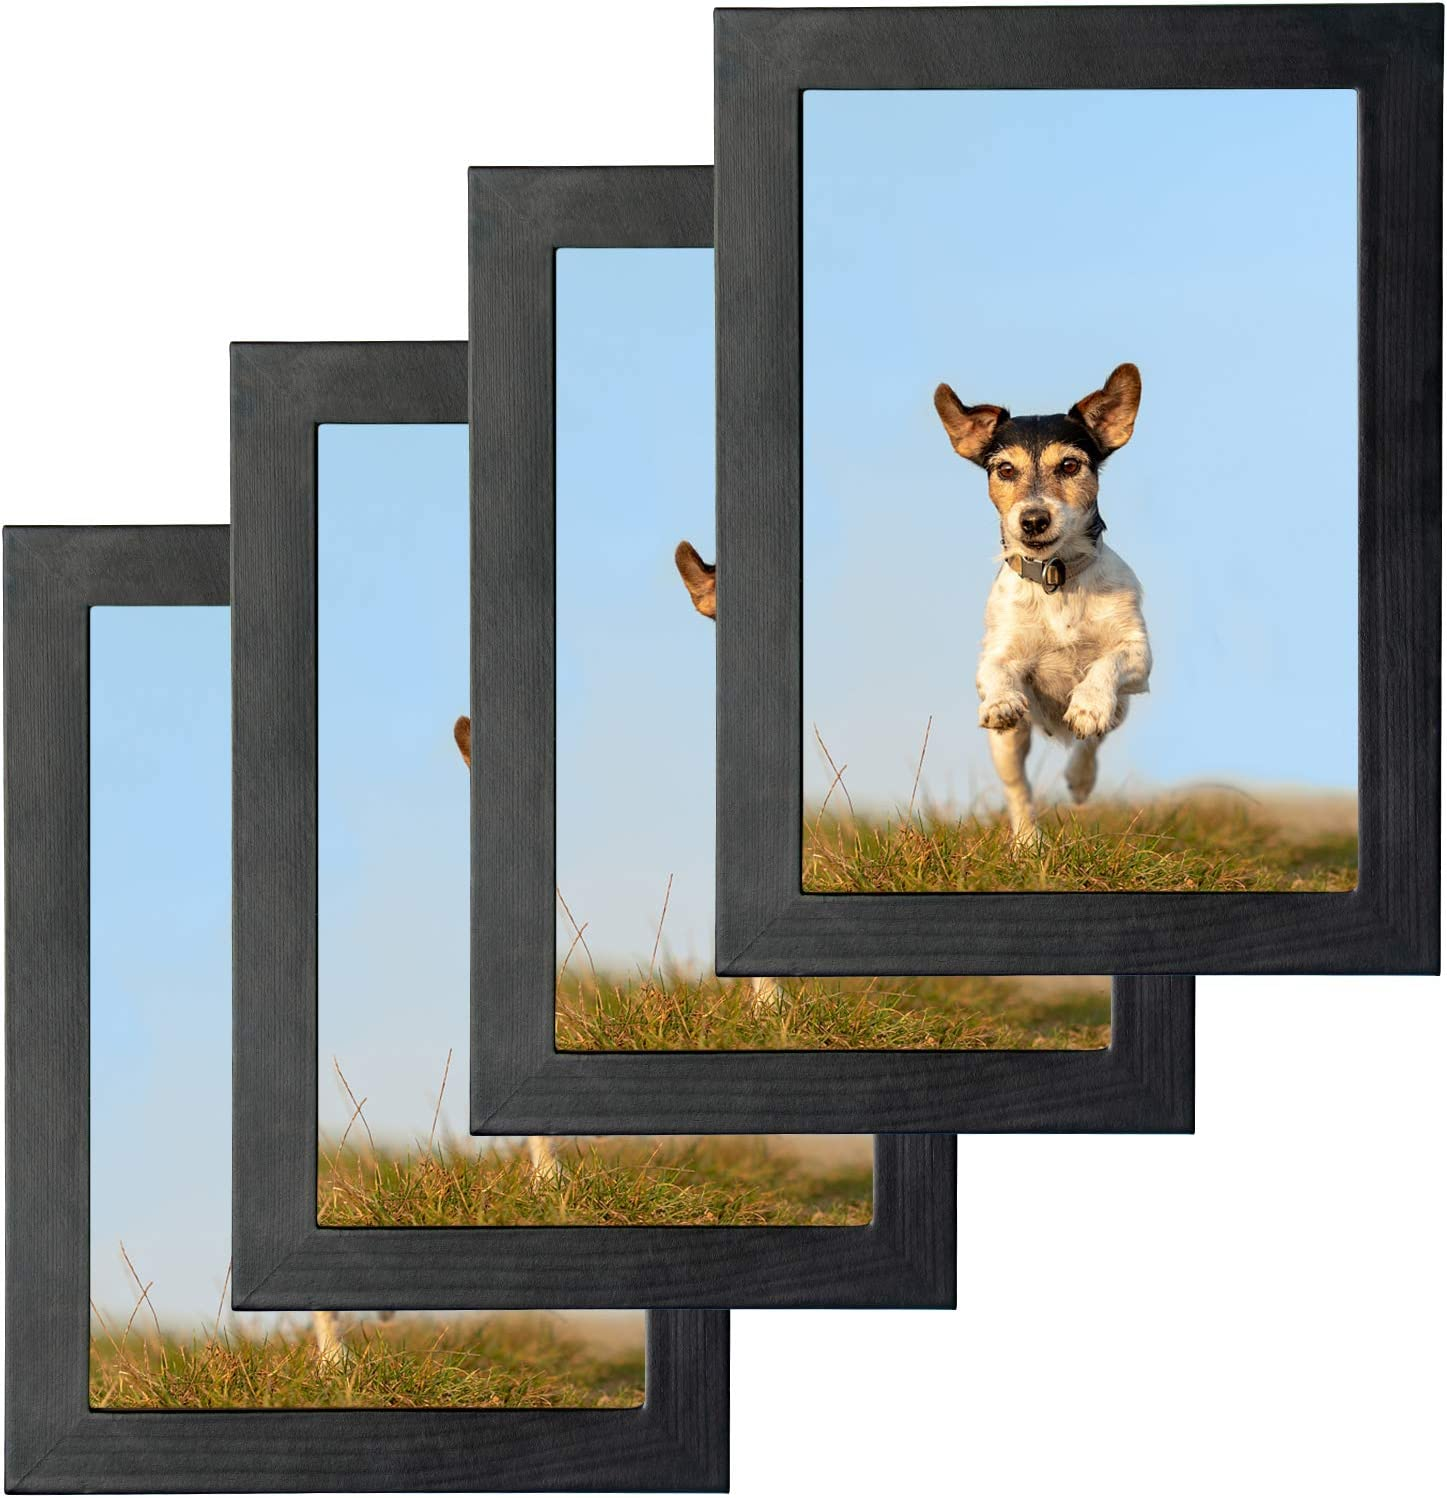 ZALLO Picture Frames Set of 4, 9x11 Photo Frames for Desktop Display and Wall Mounting Indoor Decor (Black)